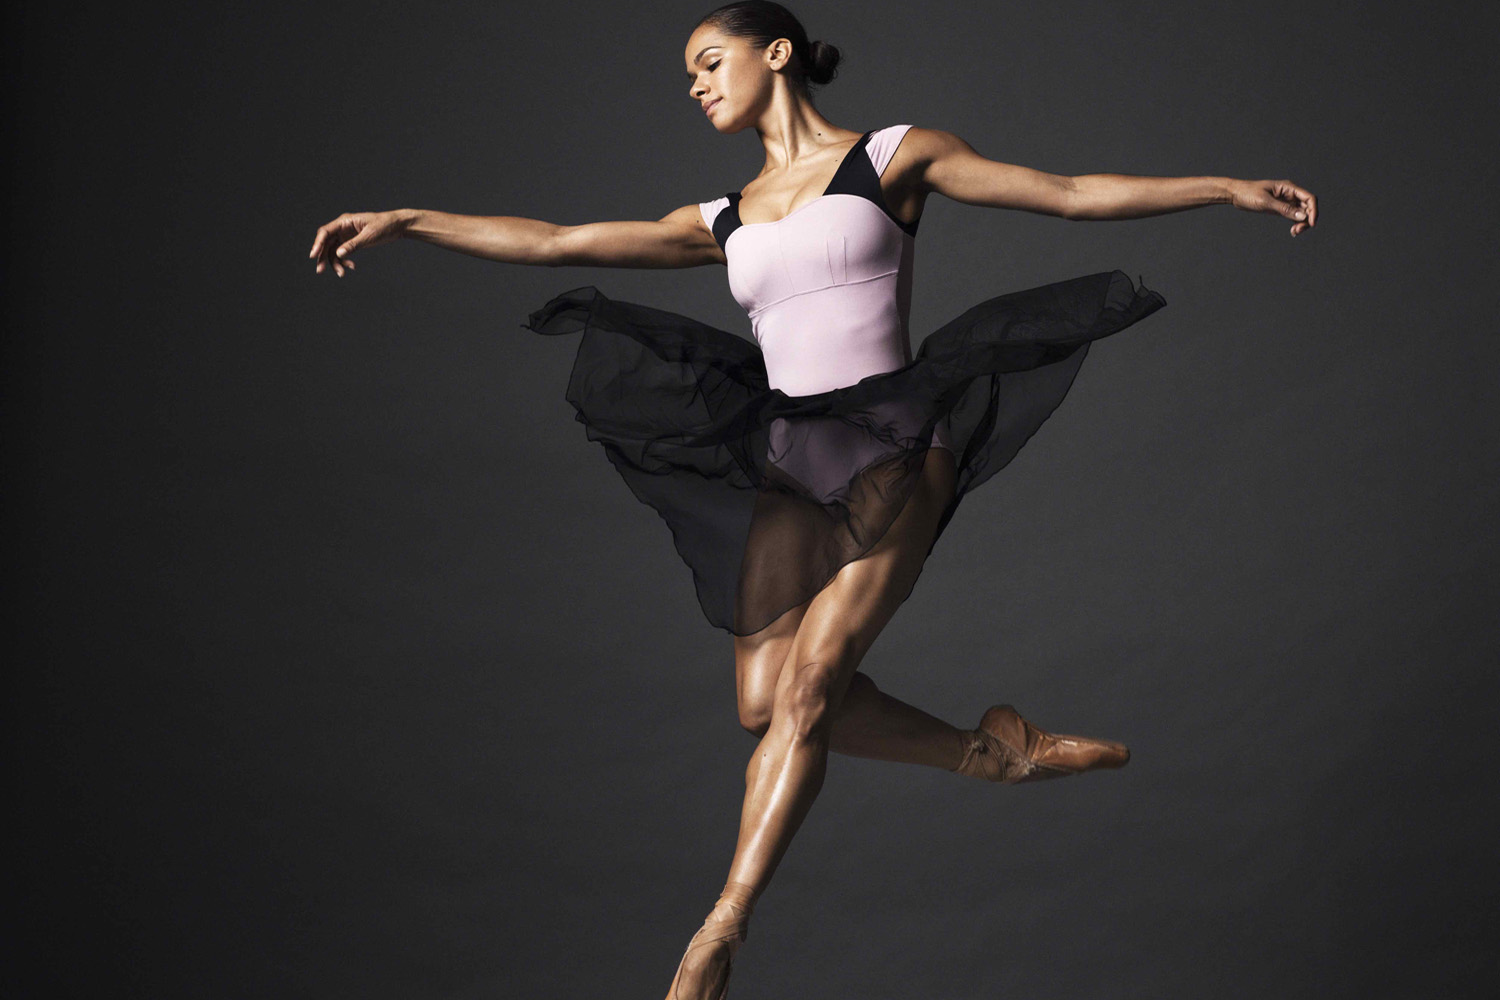 Misty Copeland Choreographs Her Own Way On Point